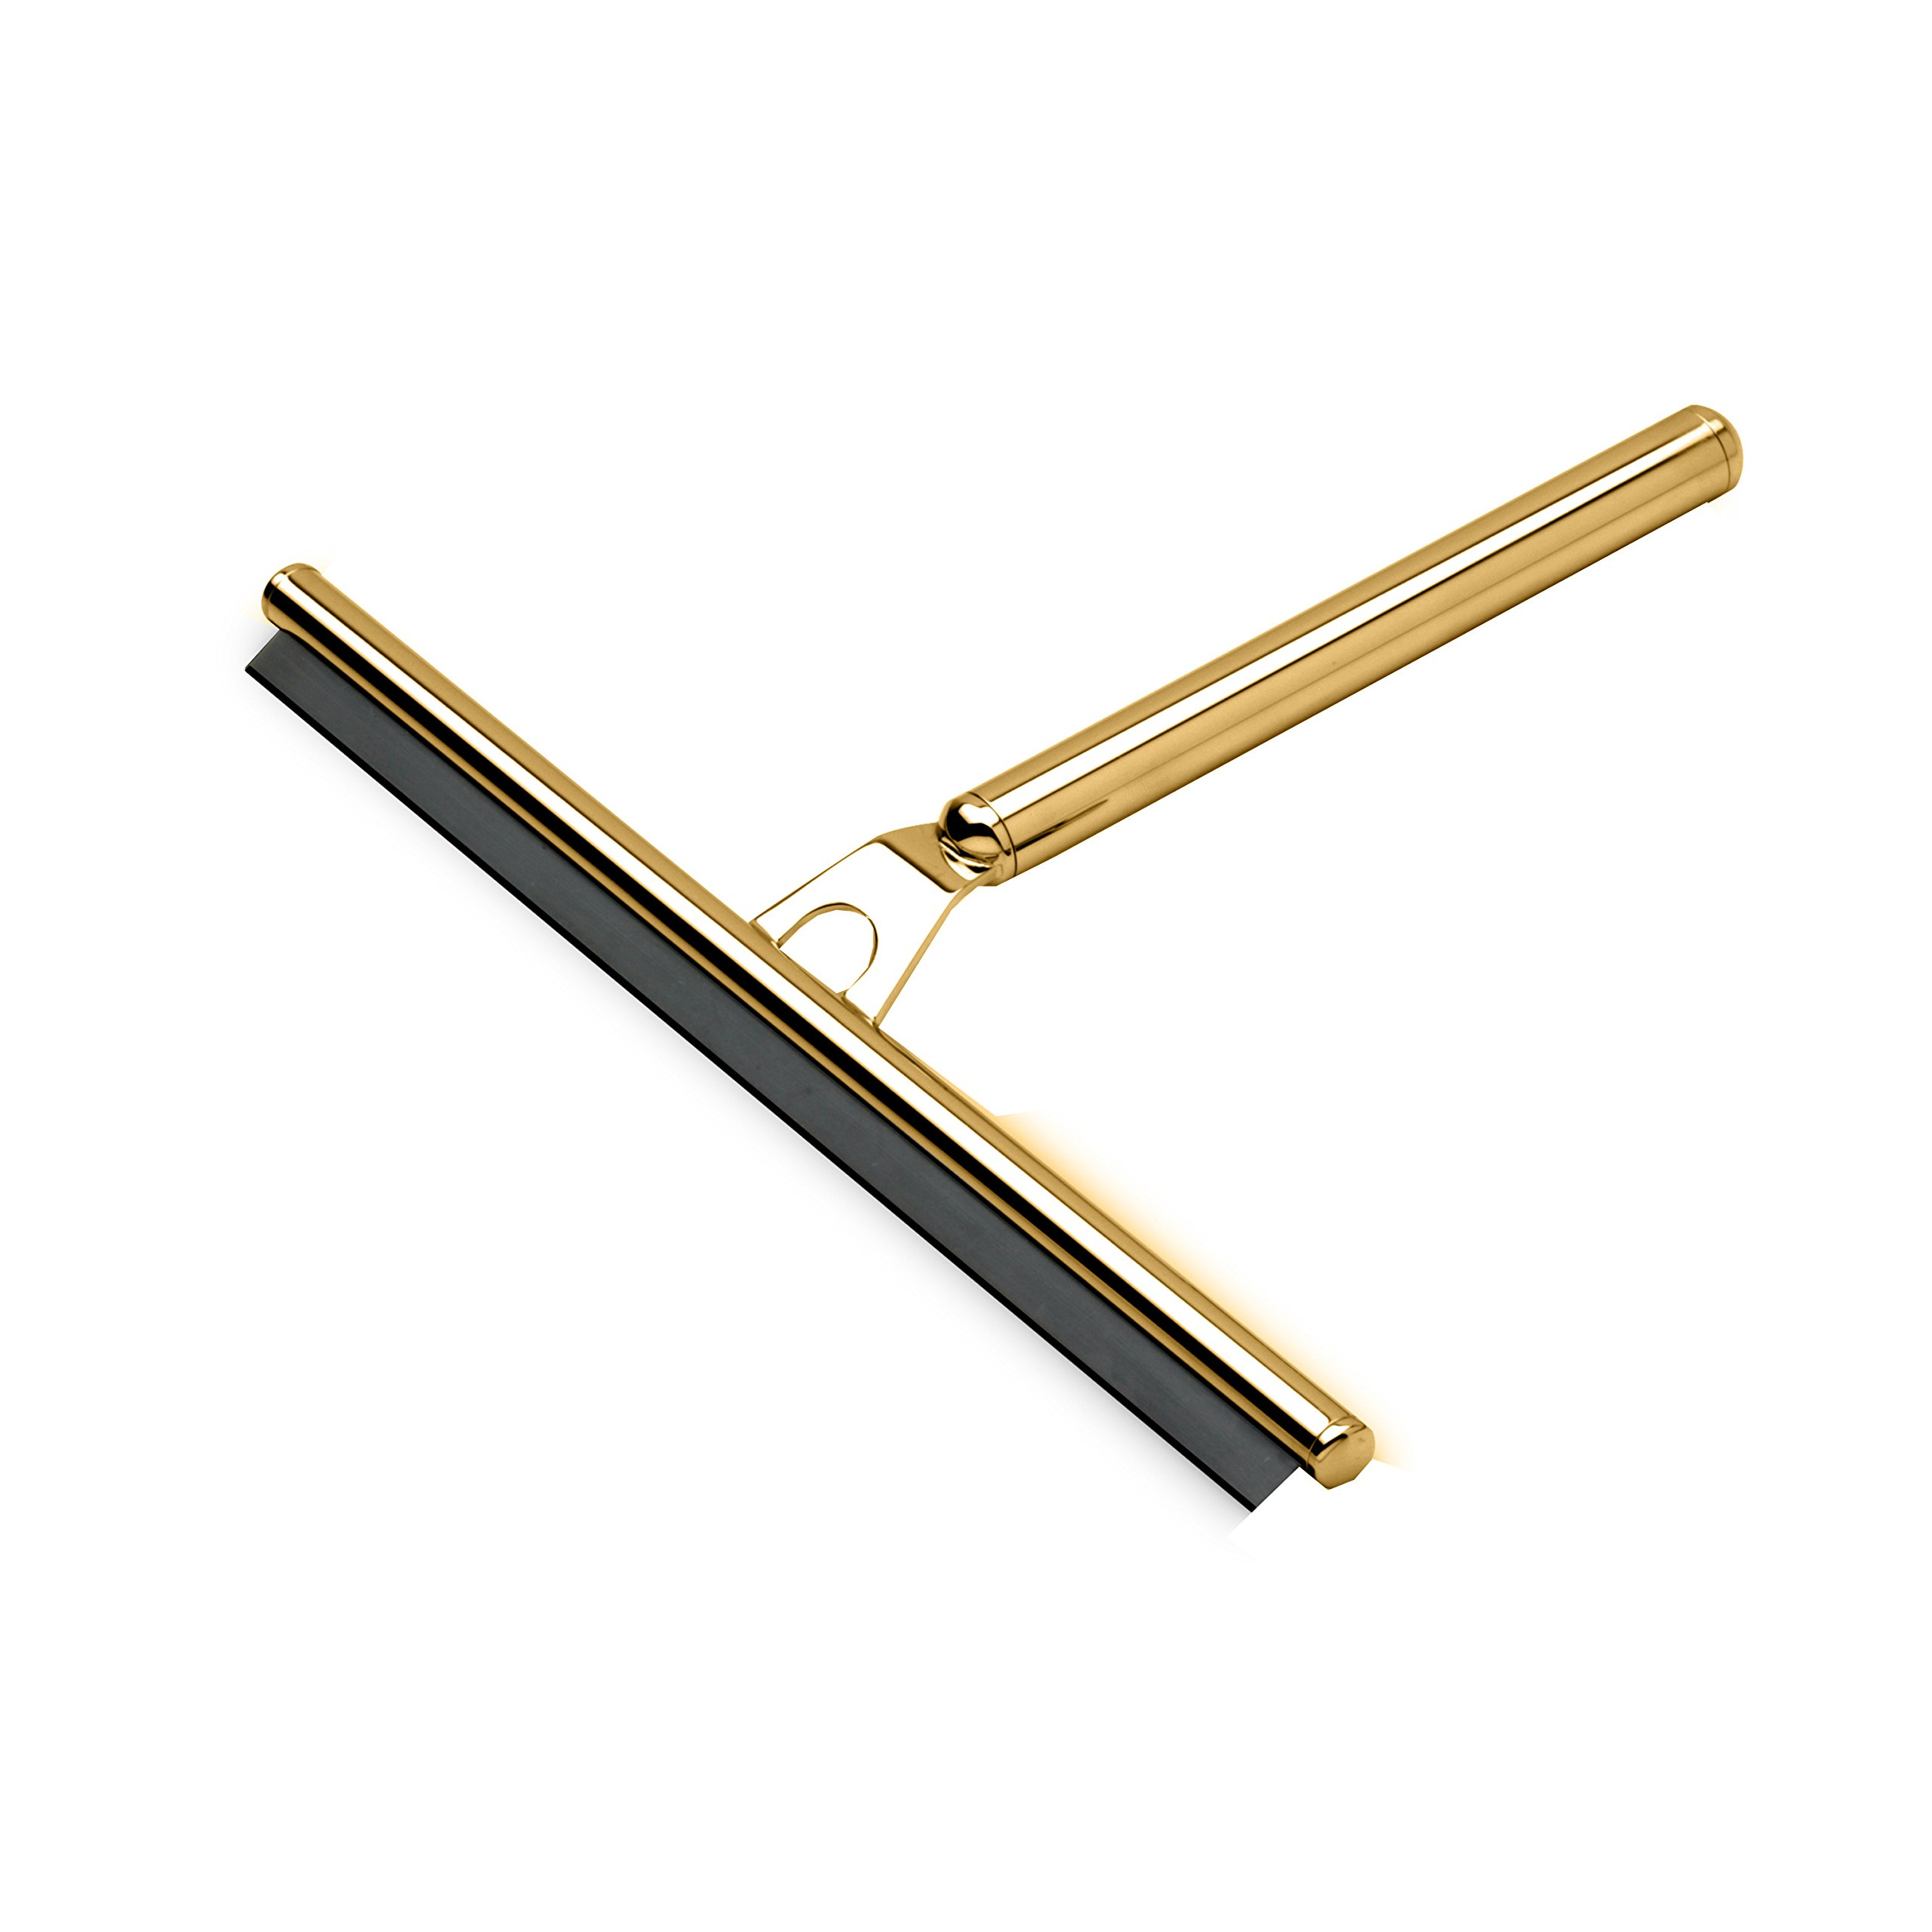 W-Luxury Round Wiper Blade Squeegee for Shower Glass, Windows, Brass (Polished Gold) by W-Luxury (Image #1)